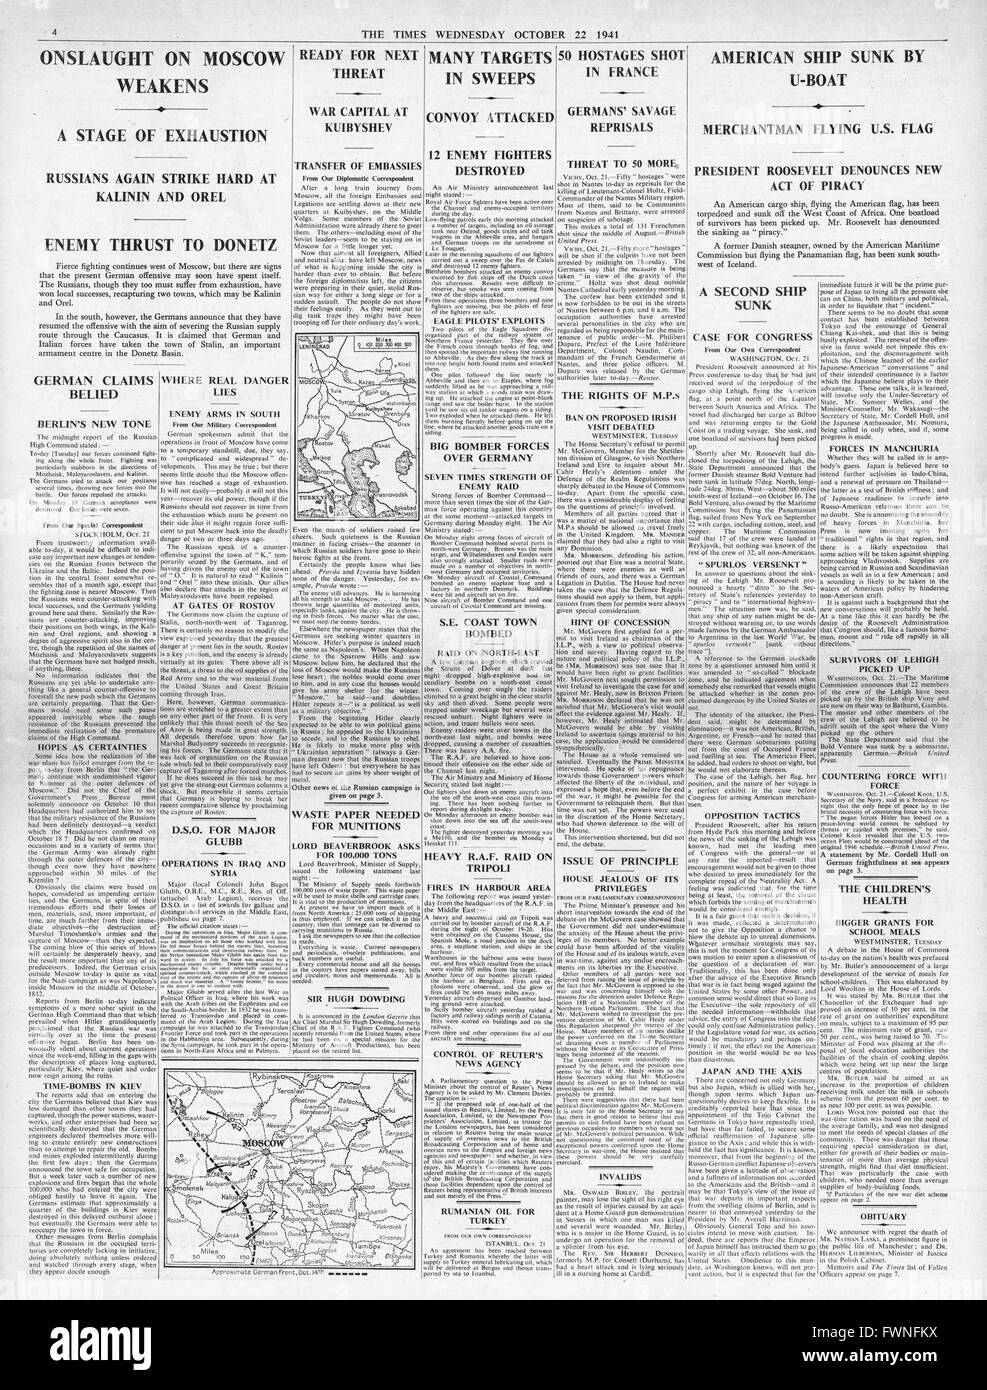 1941 page 4 The Times Battle for Moscow, Executions in Nantes and U.S. Cargo ship Lehigh sunk by submarine U-126 Stock Photo